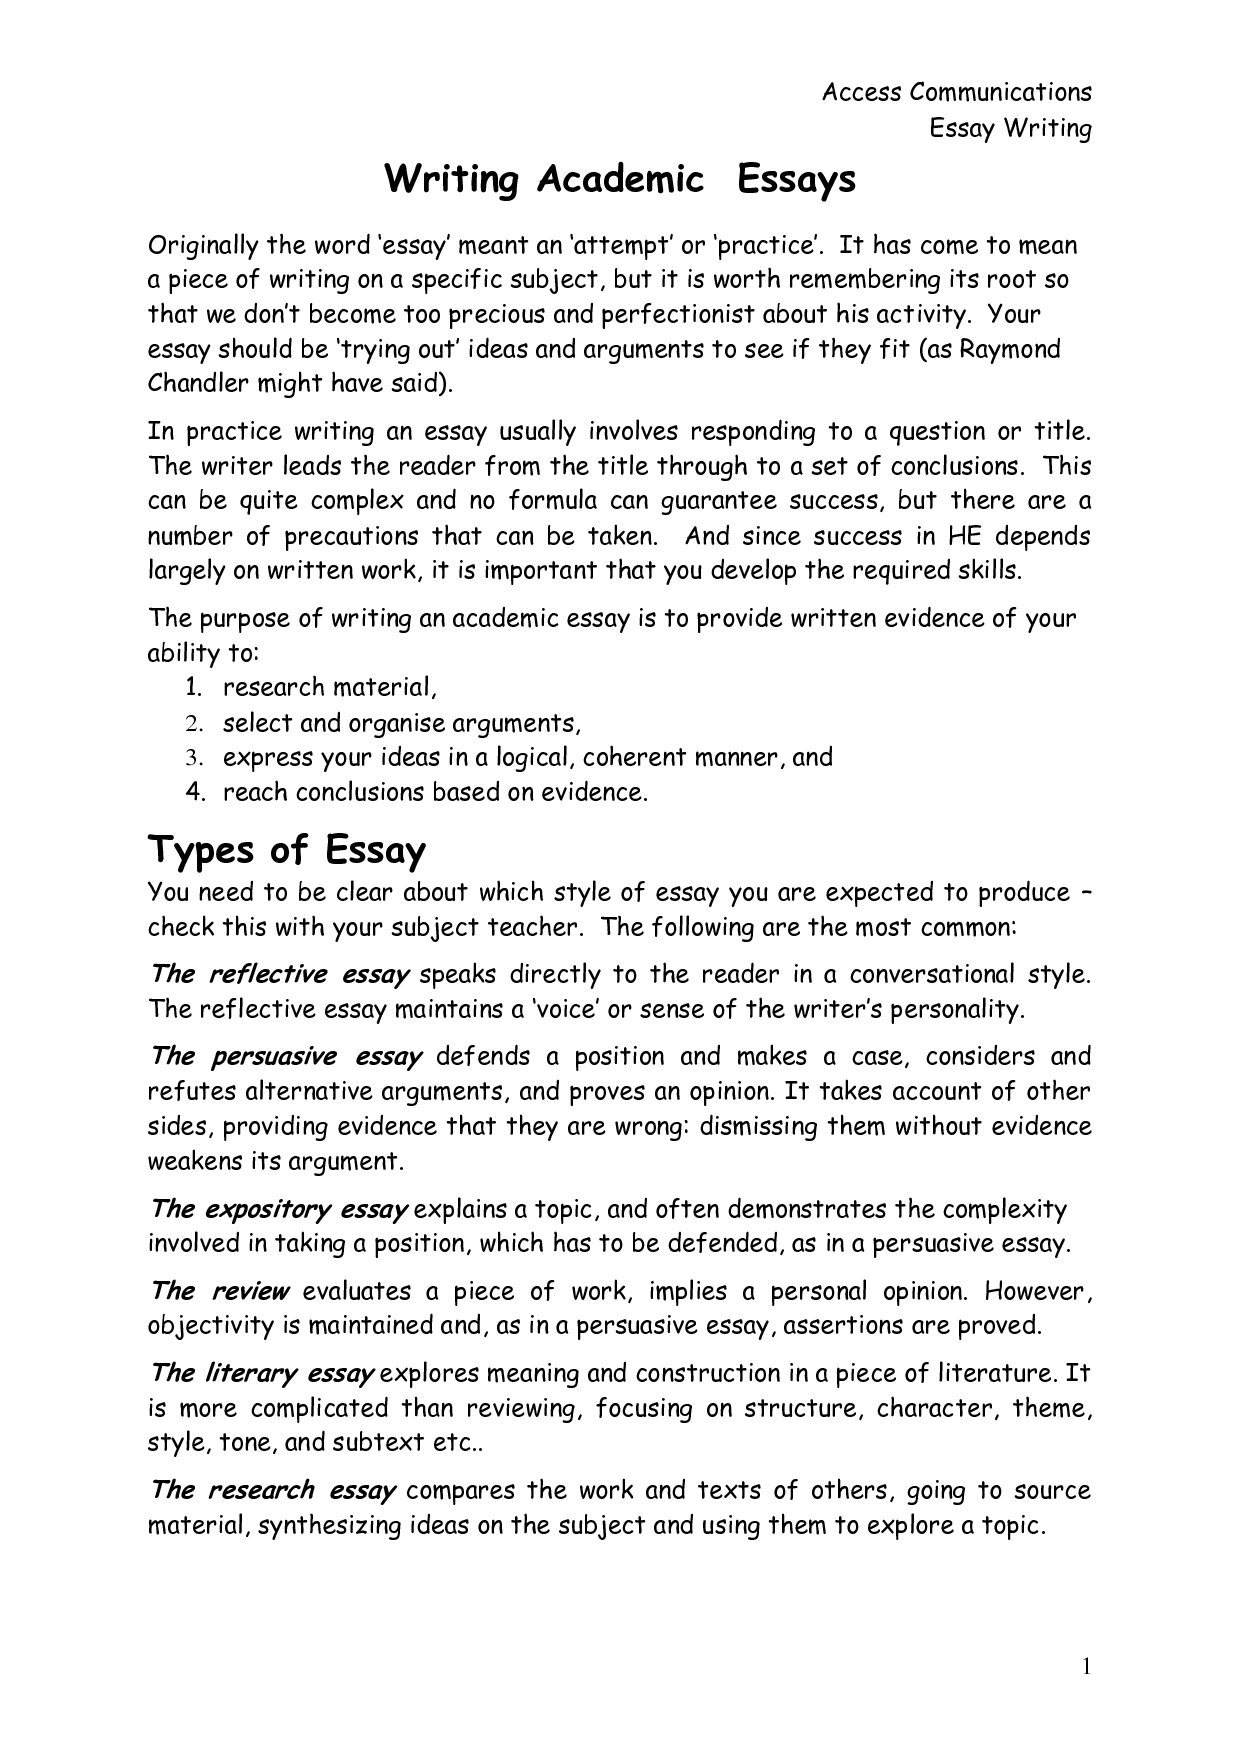 019 Write My Essay For Me Example Surprising Me.org Free Online Uk Full